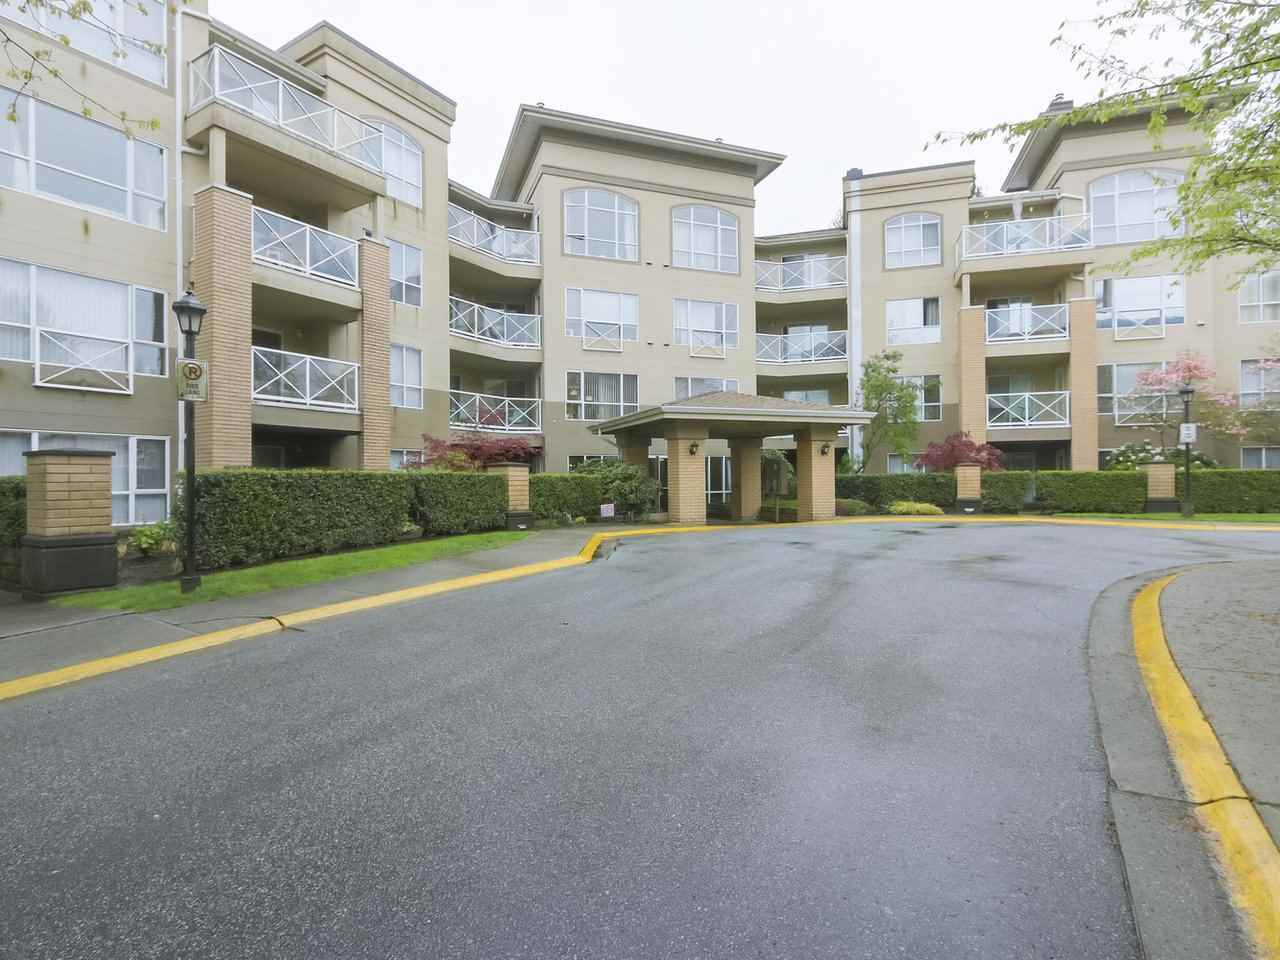 2559-parkview-lane-central-pt-coquitlam-port-coquitlam-01 at 302 - 2559 Parkview Lane, Central Pt Coquitlam, Port Coquitlam